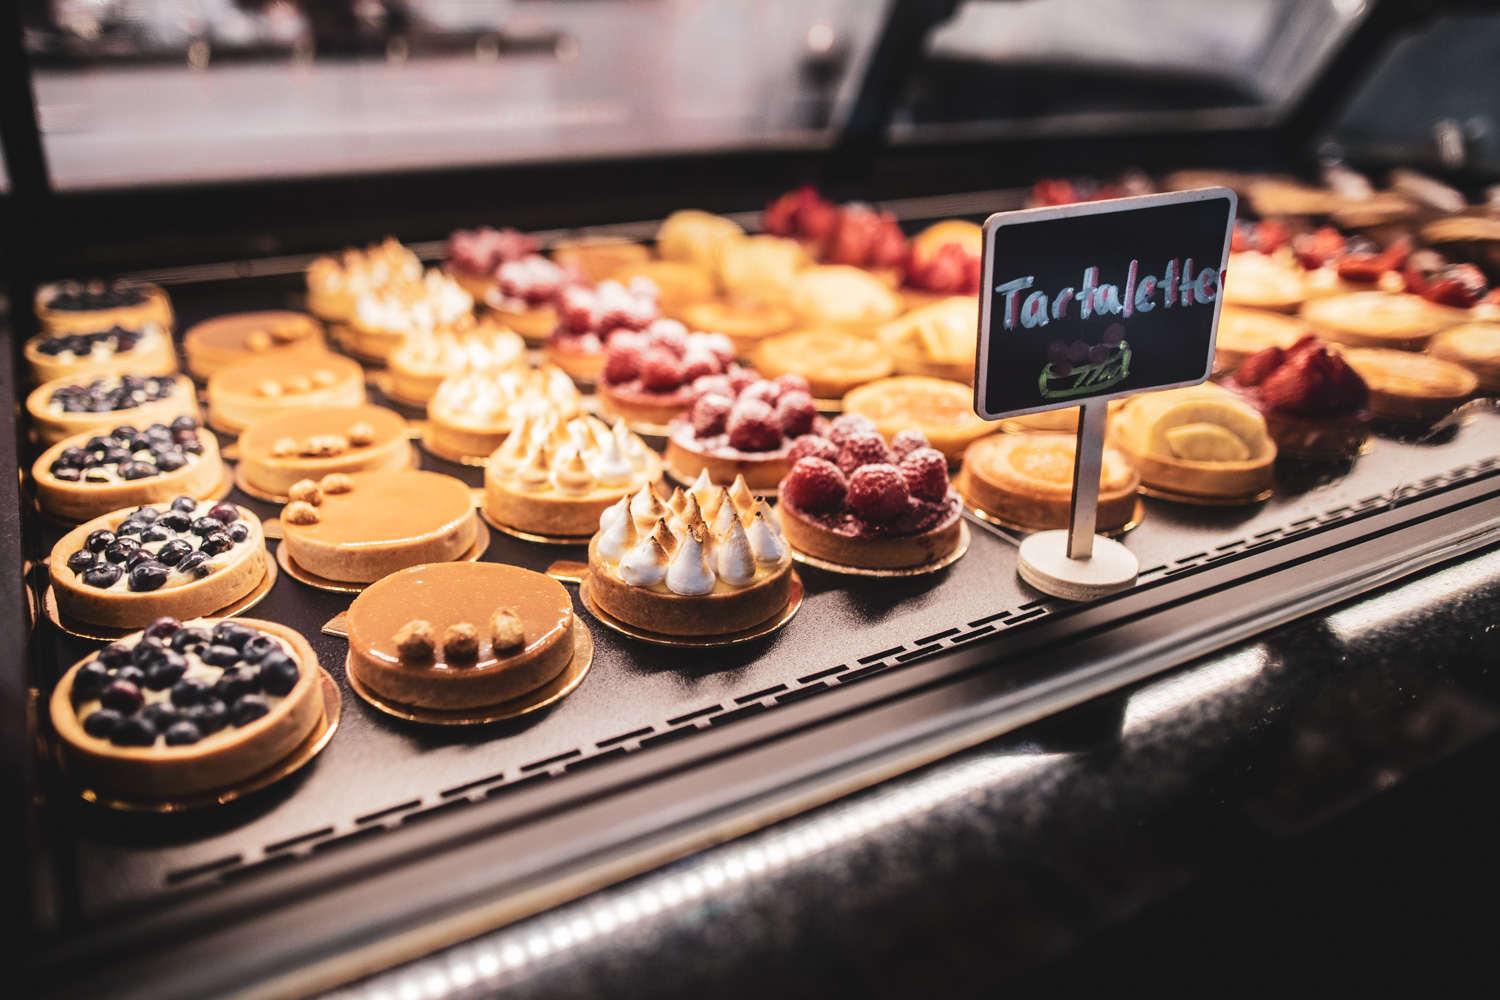 Tartelettes—a chef's assortment of delicious tartes.